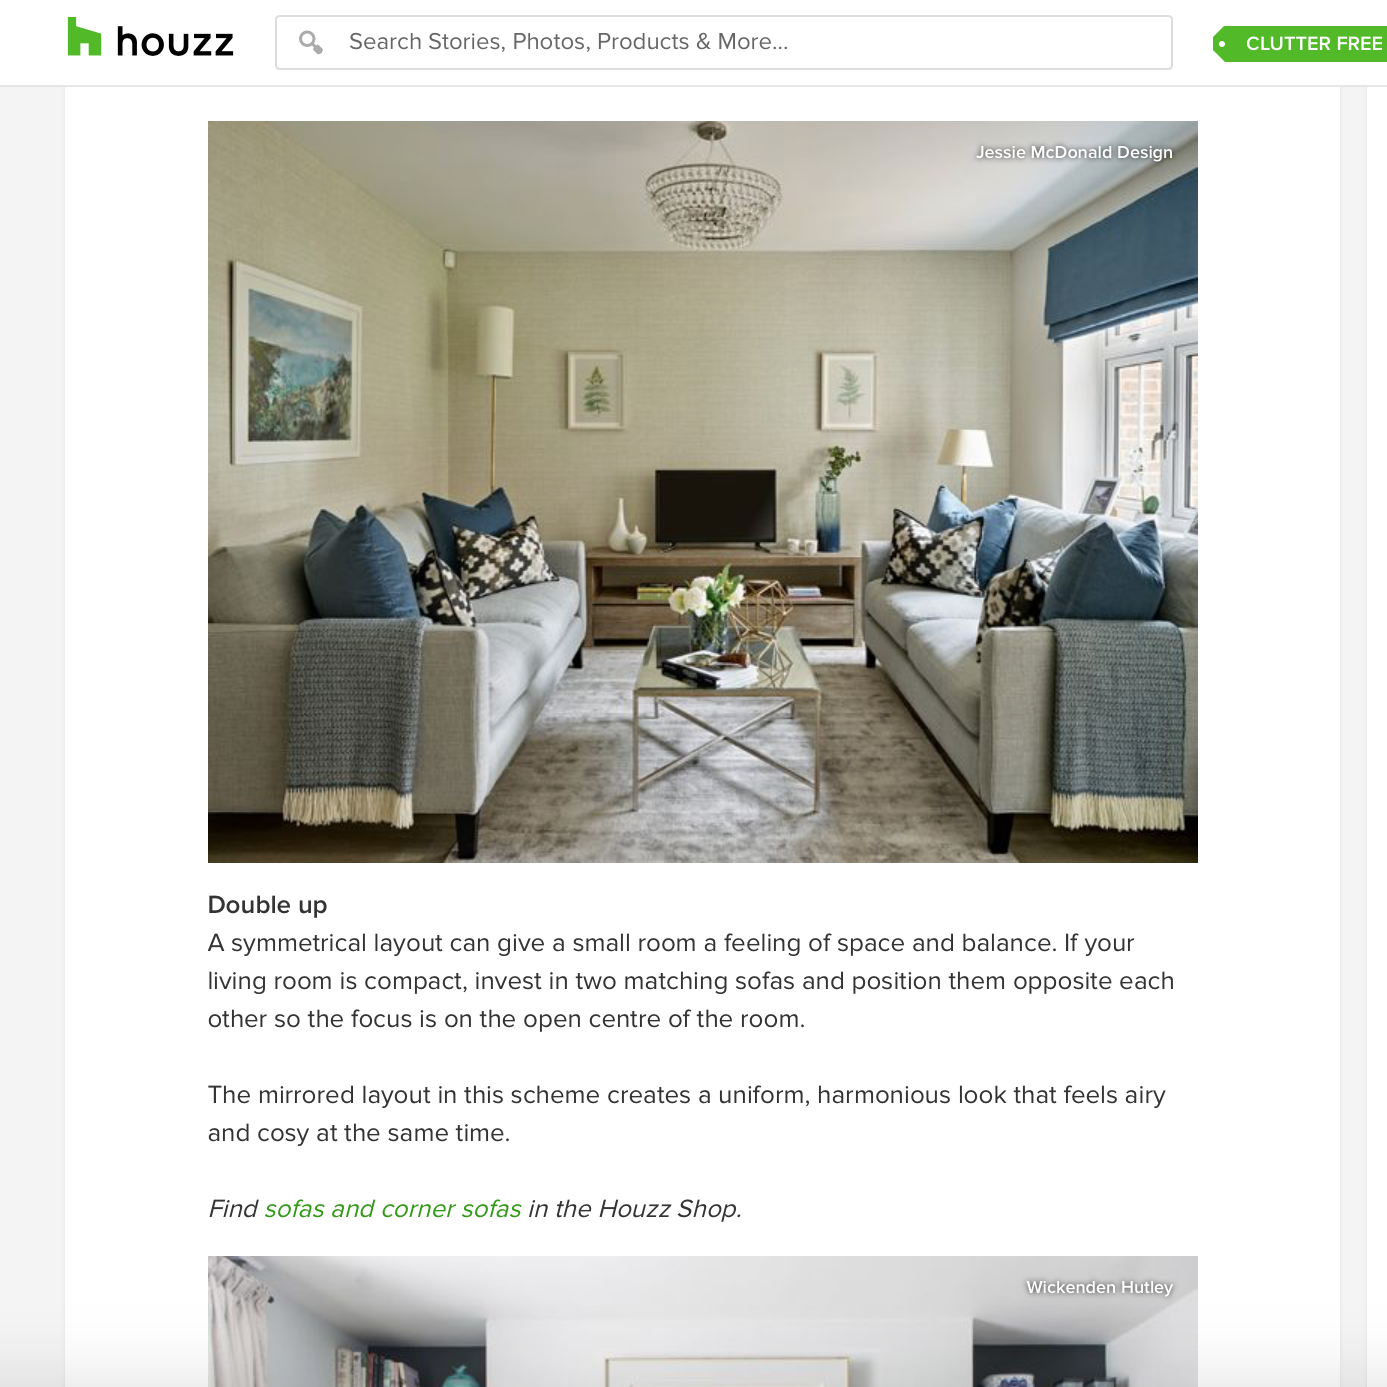 Featured on houzz - Click to read article online